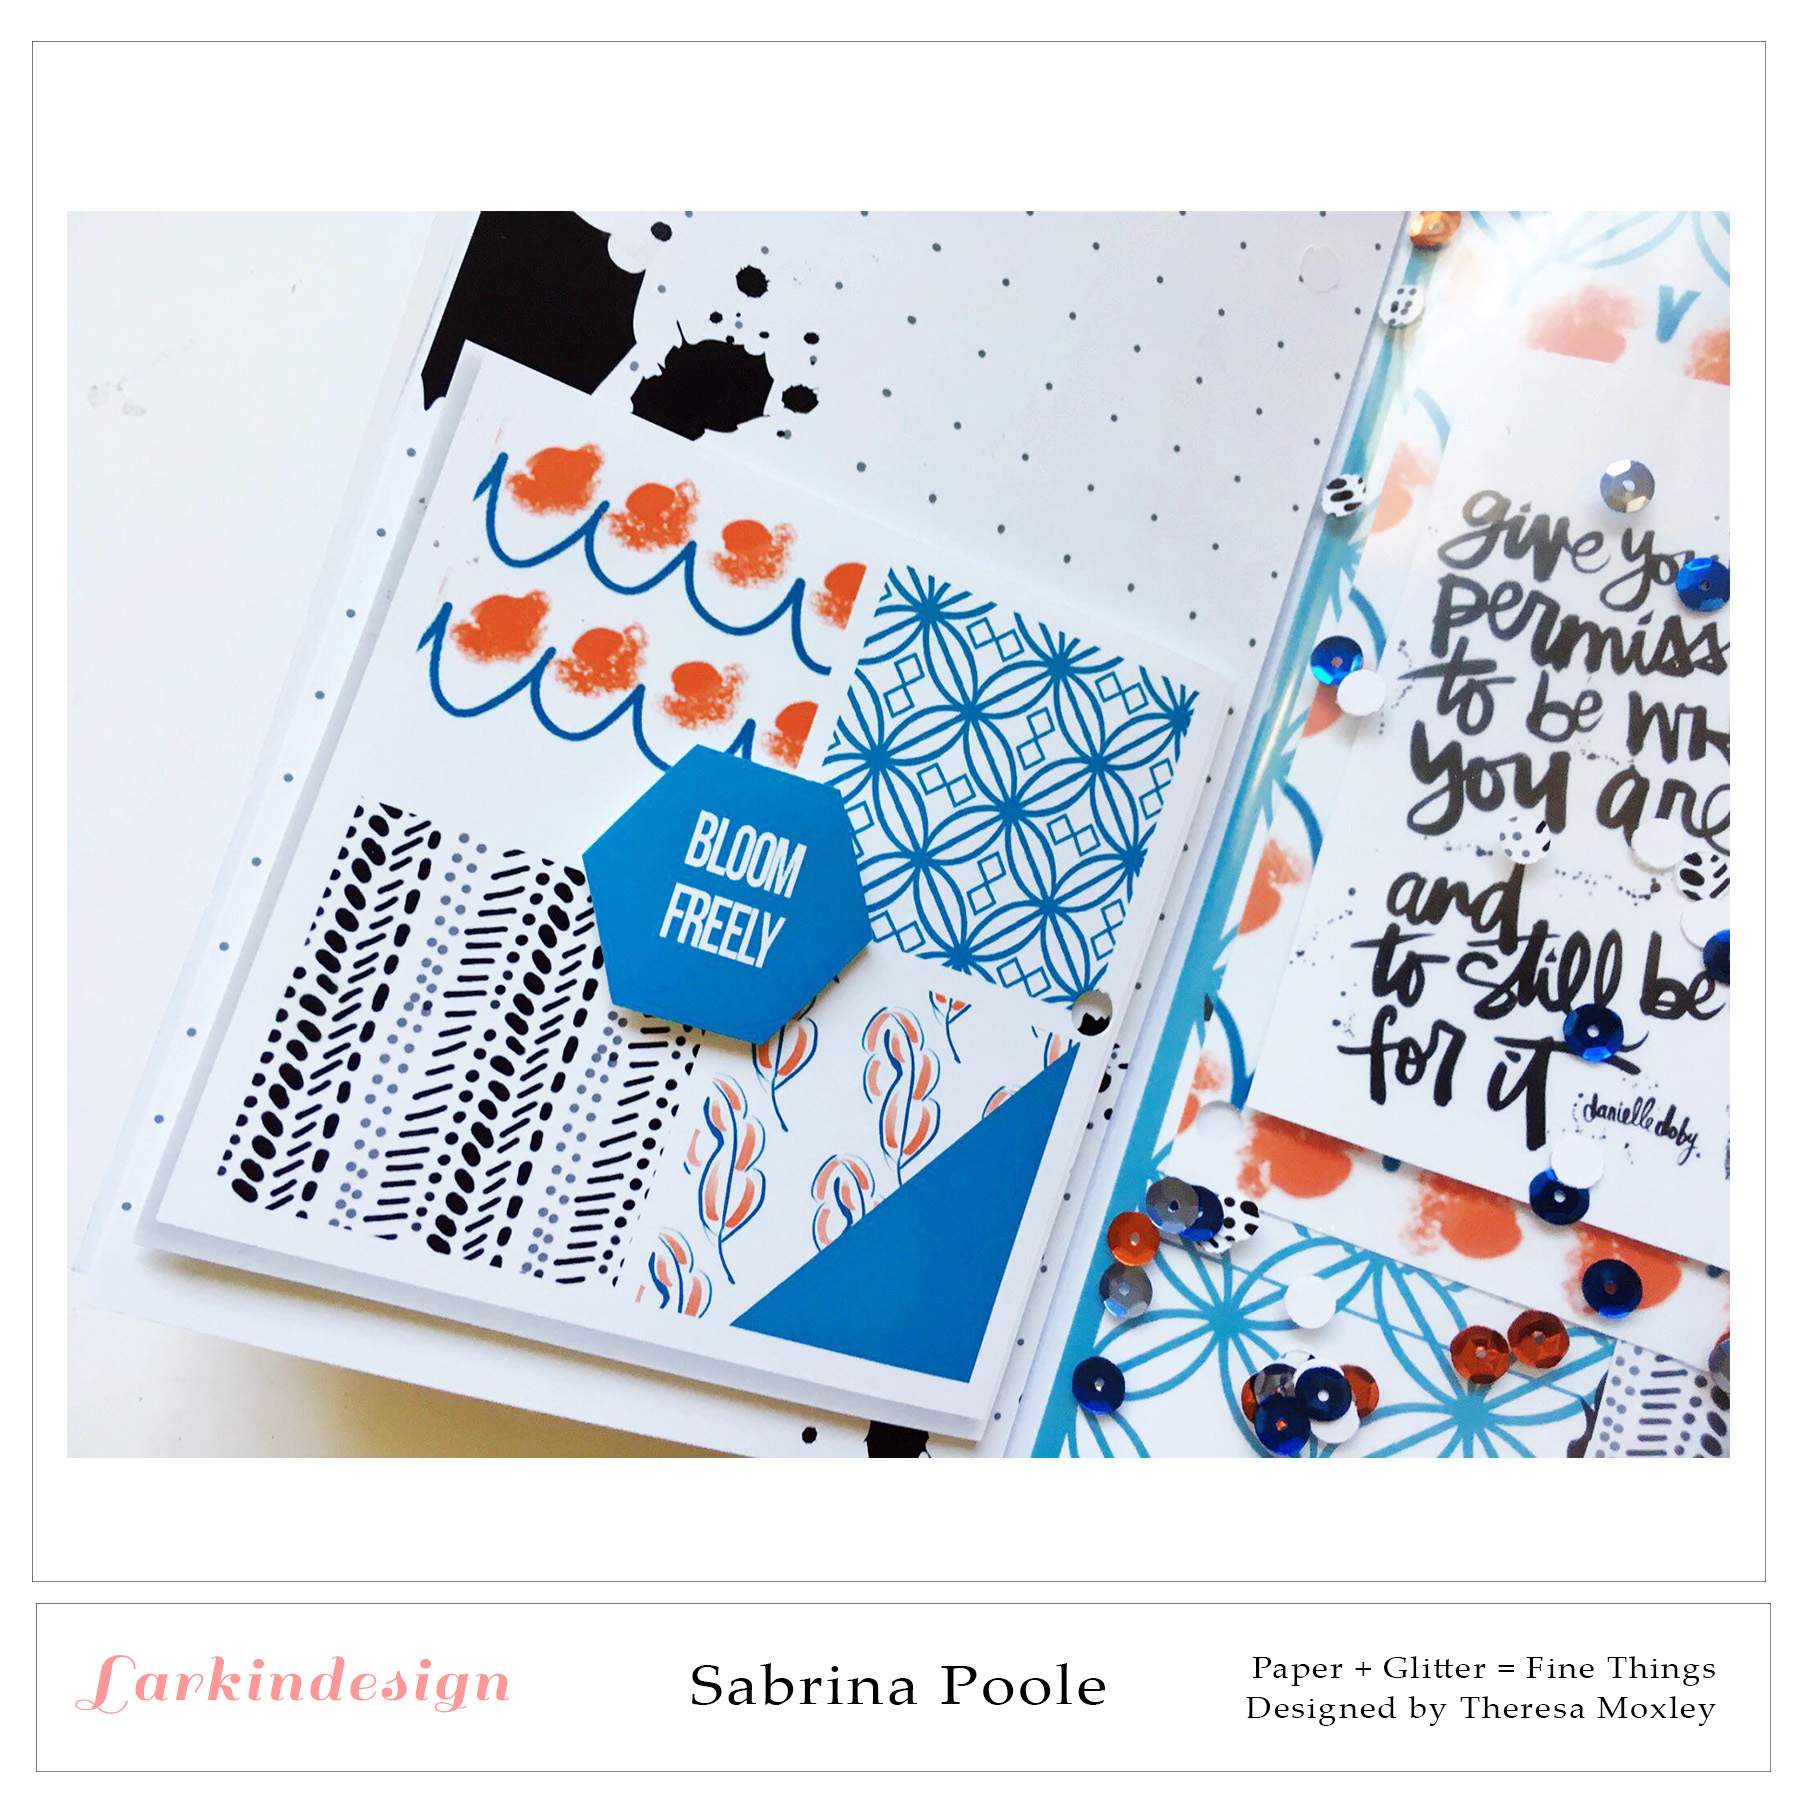 Larkindesign Creative Team Sabrina Poole | Life In Full Bloom Travelers Notebook Kit